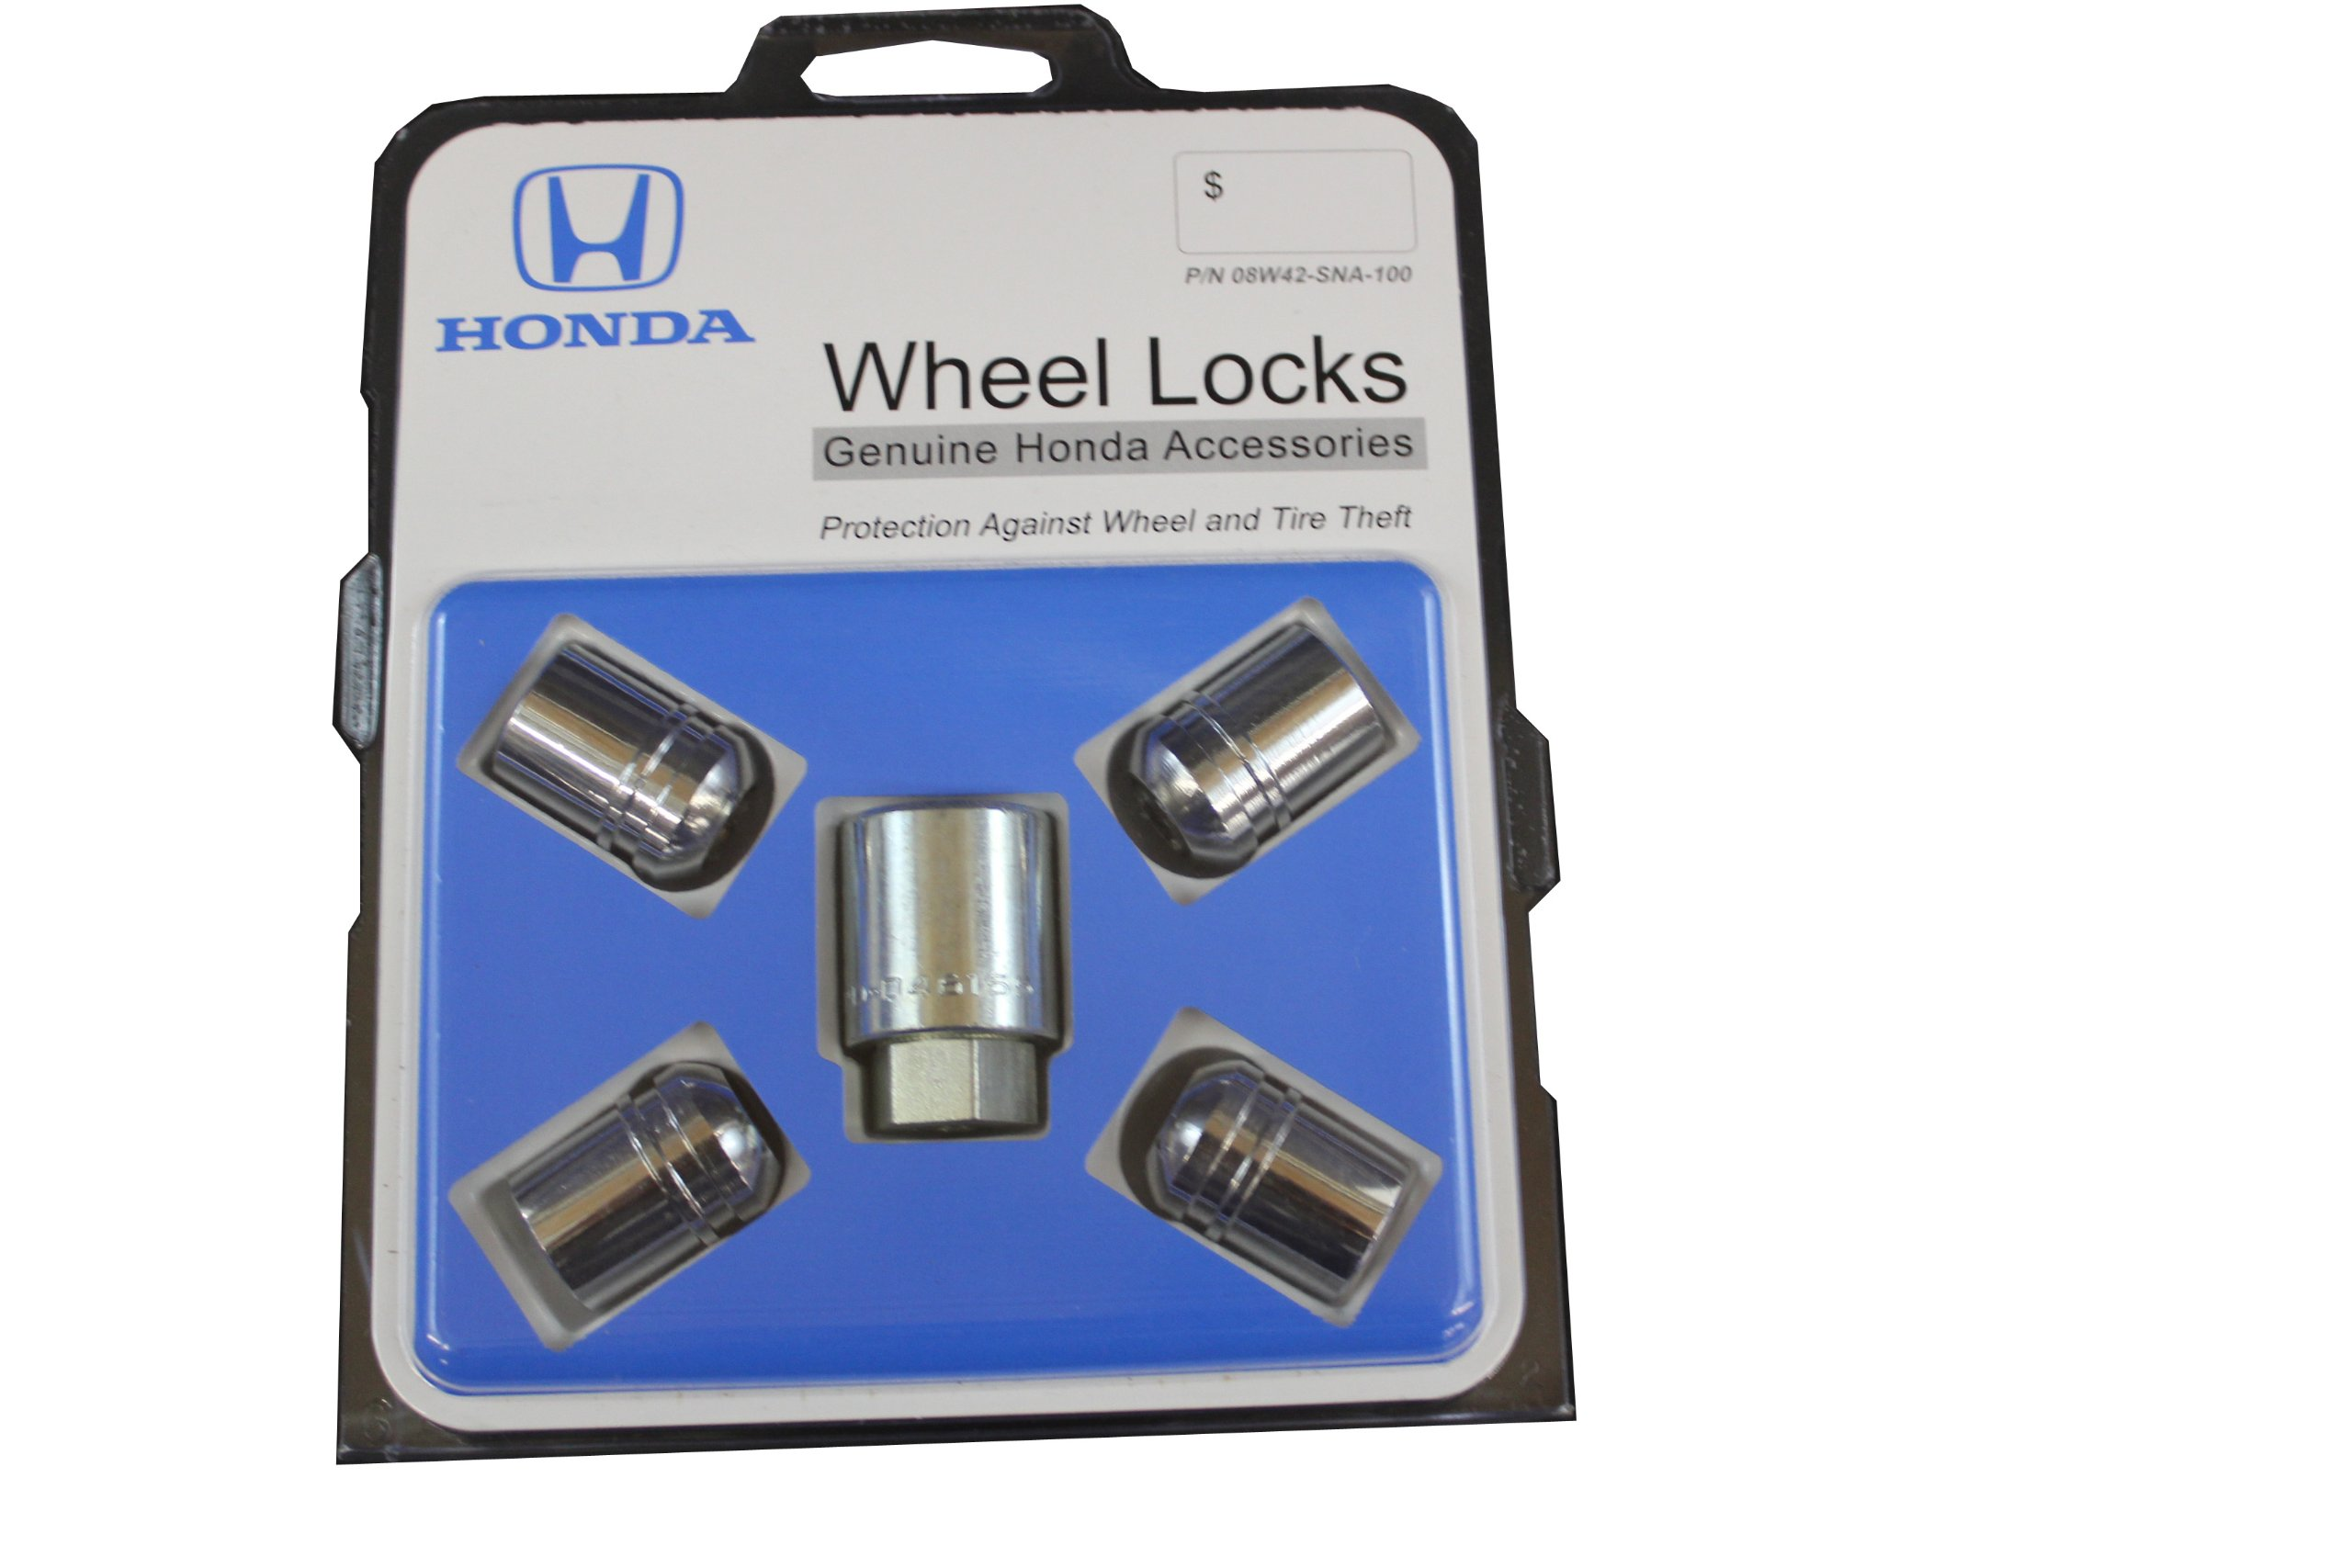 Honda 08W42-SNA-100 Automotive Accessories by Honda